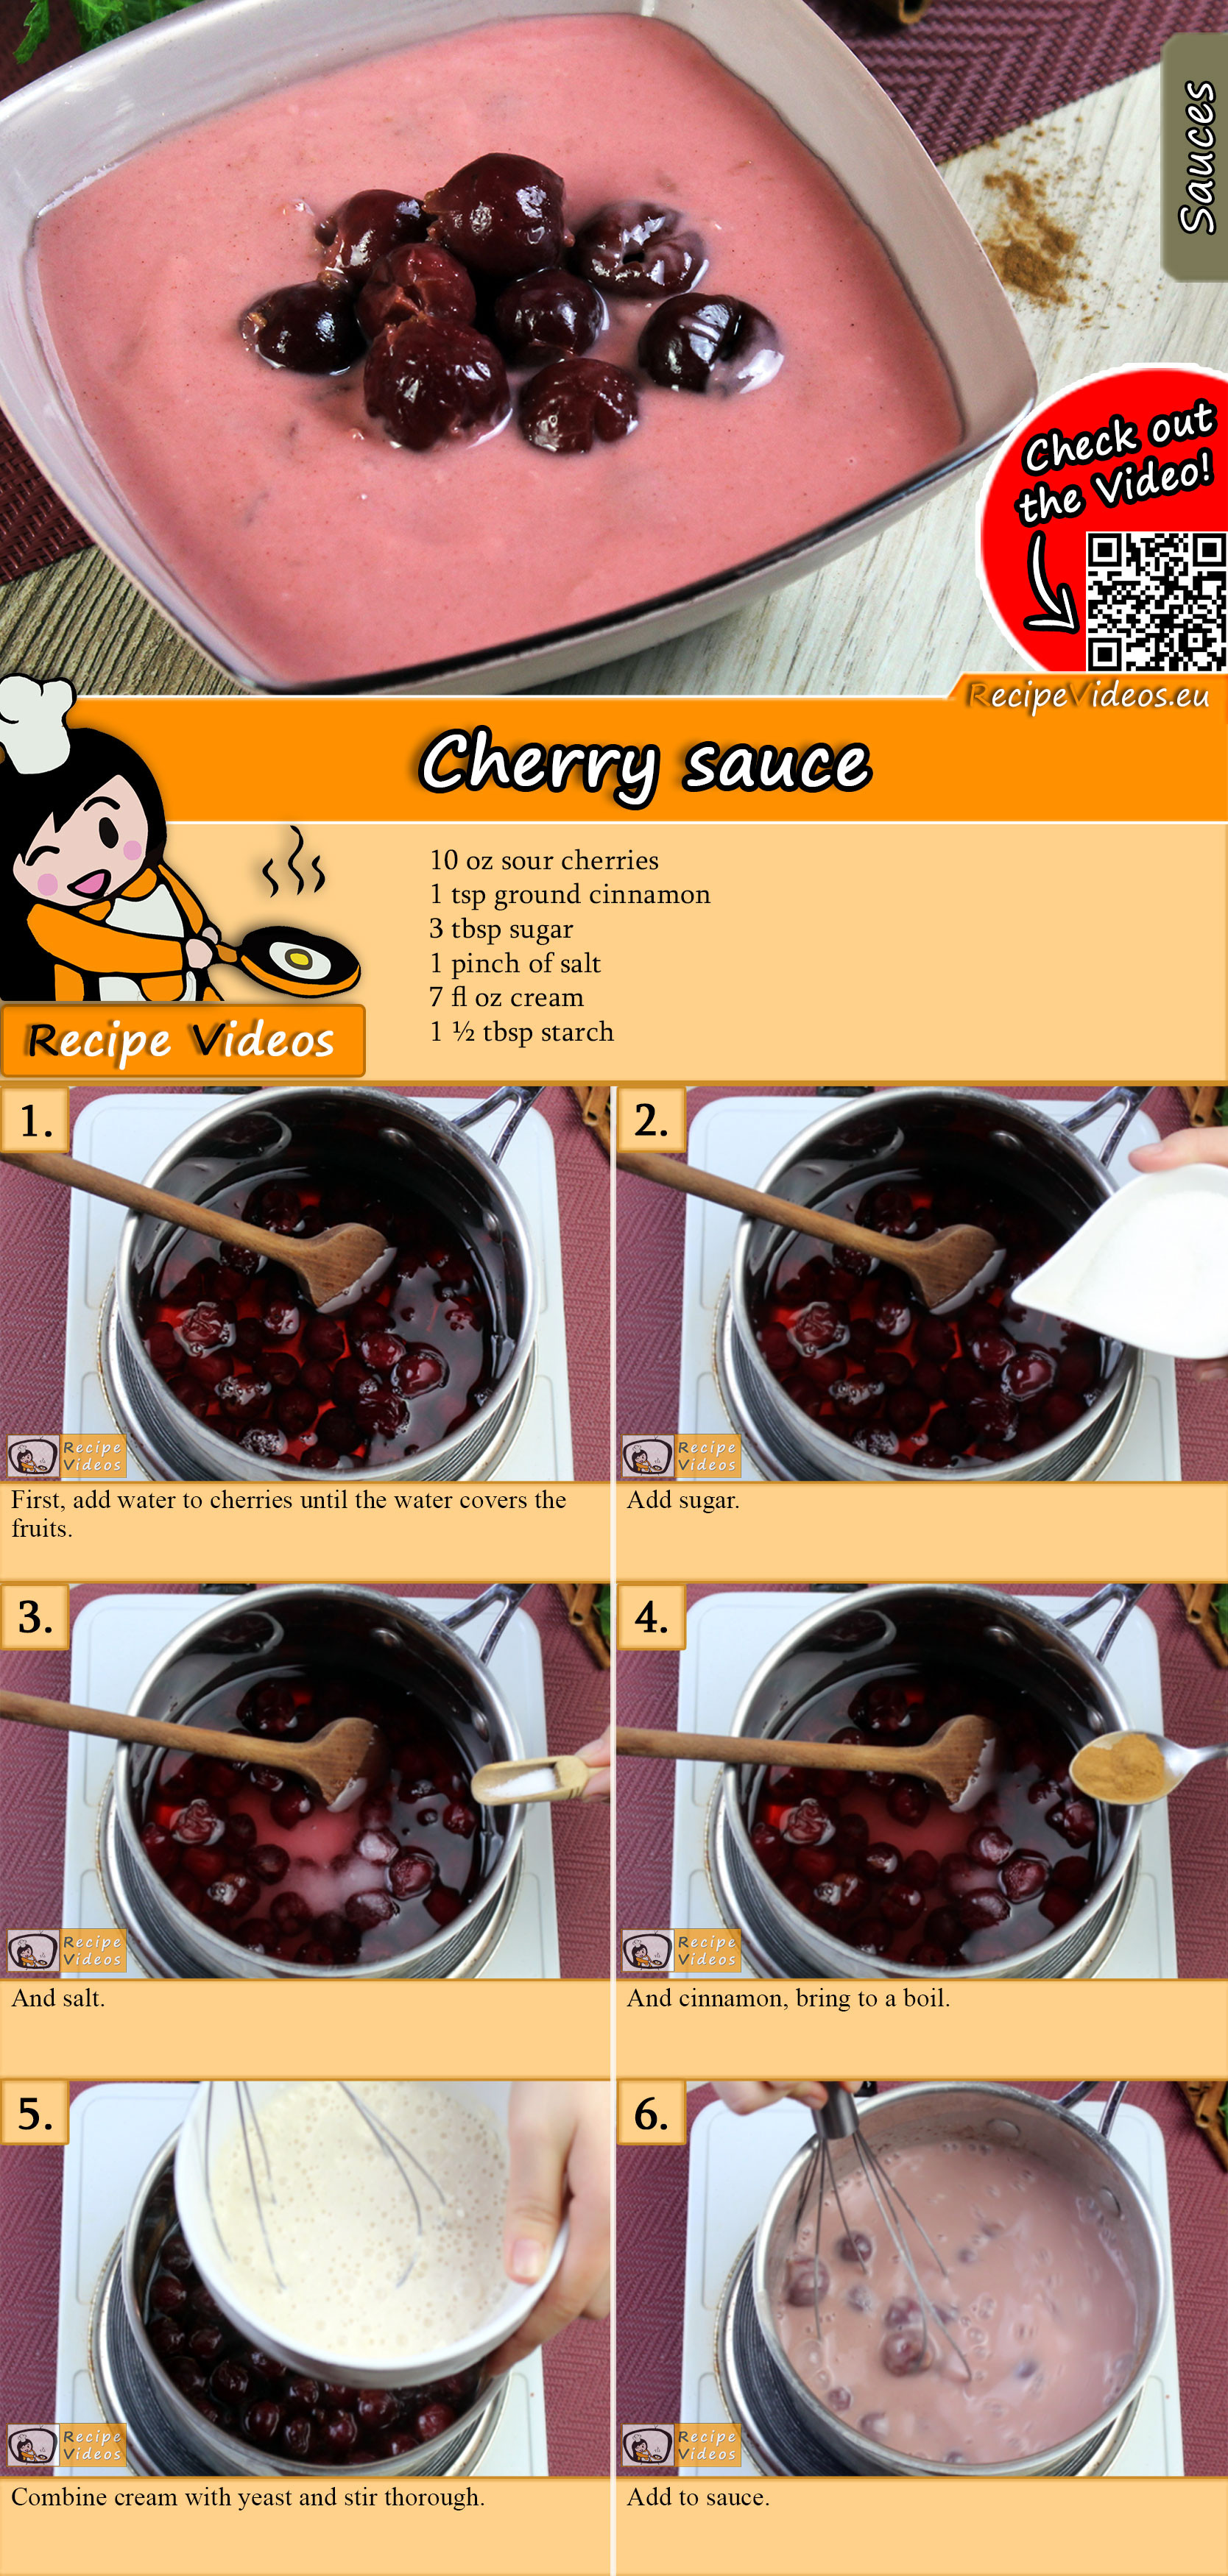 Cherry sauce recipe with video